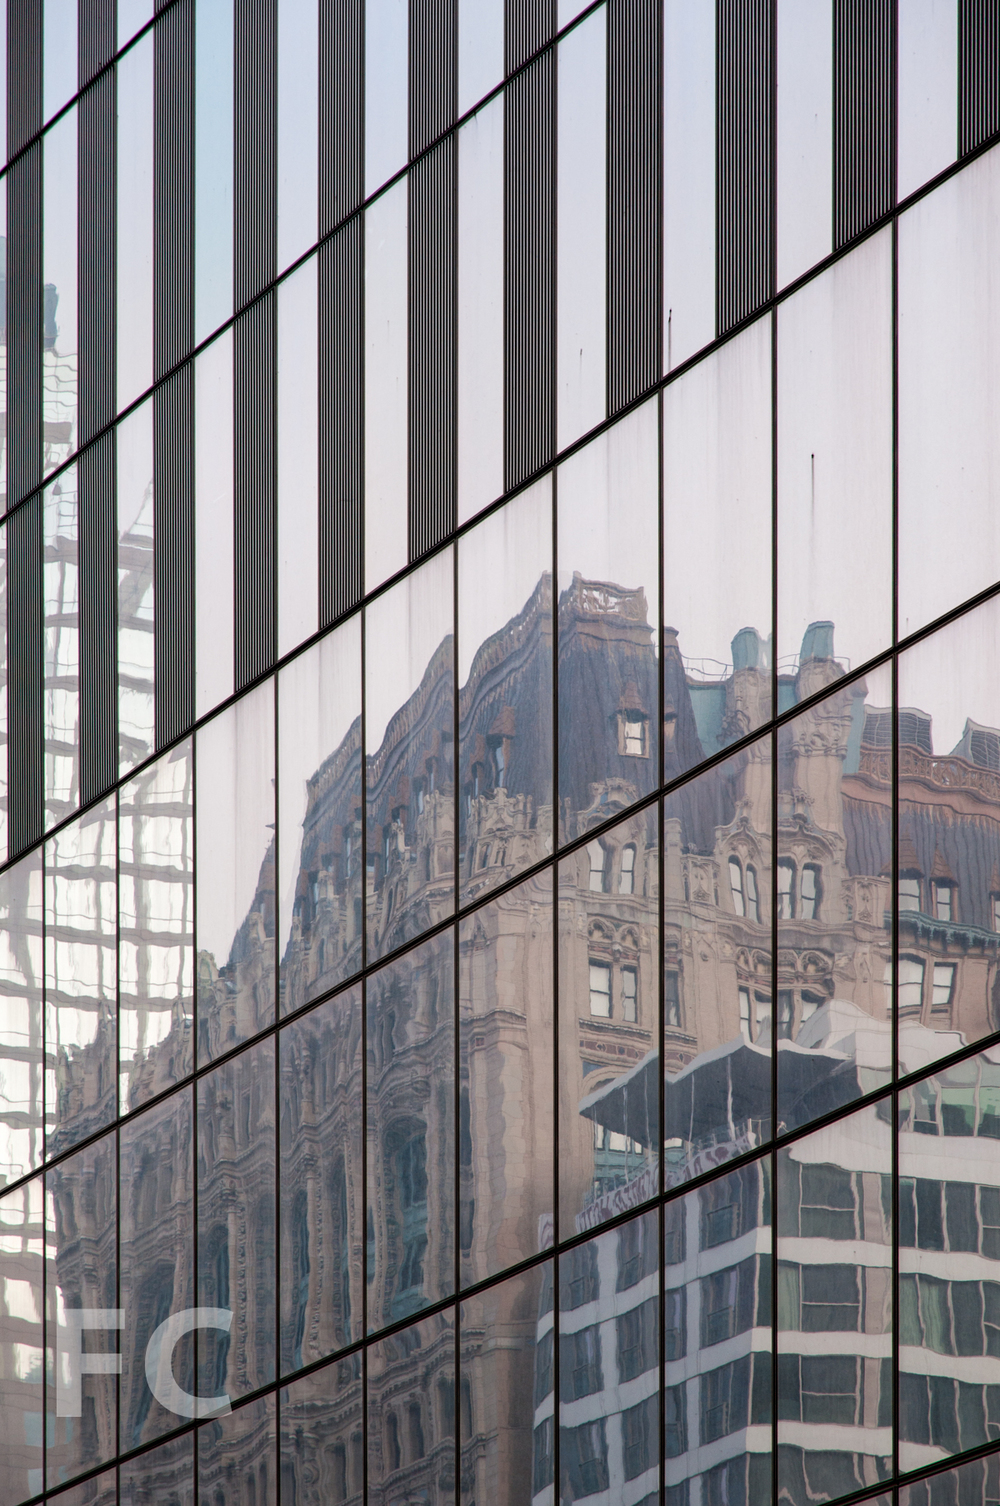 Reflections in the façade of 4 WTC.